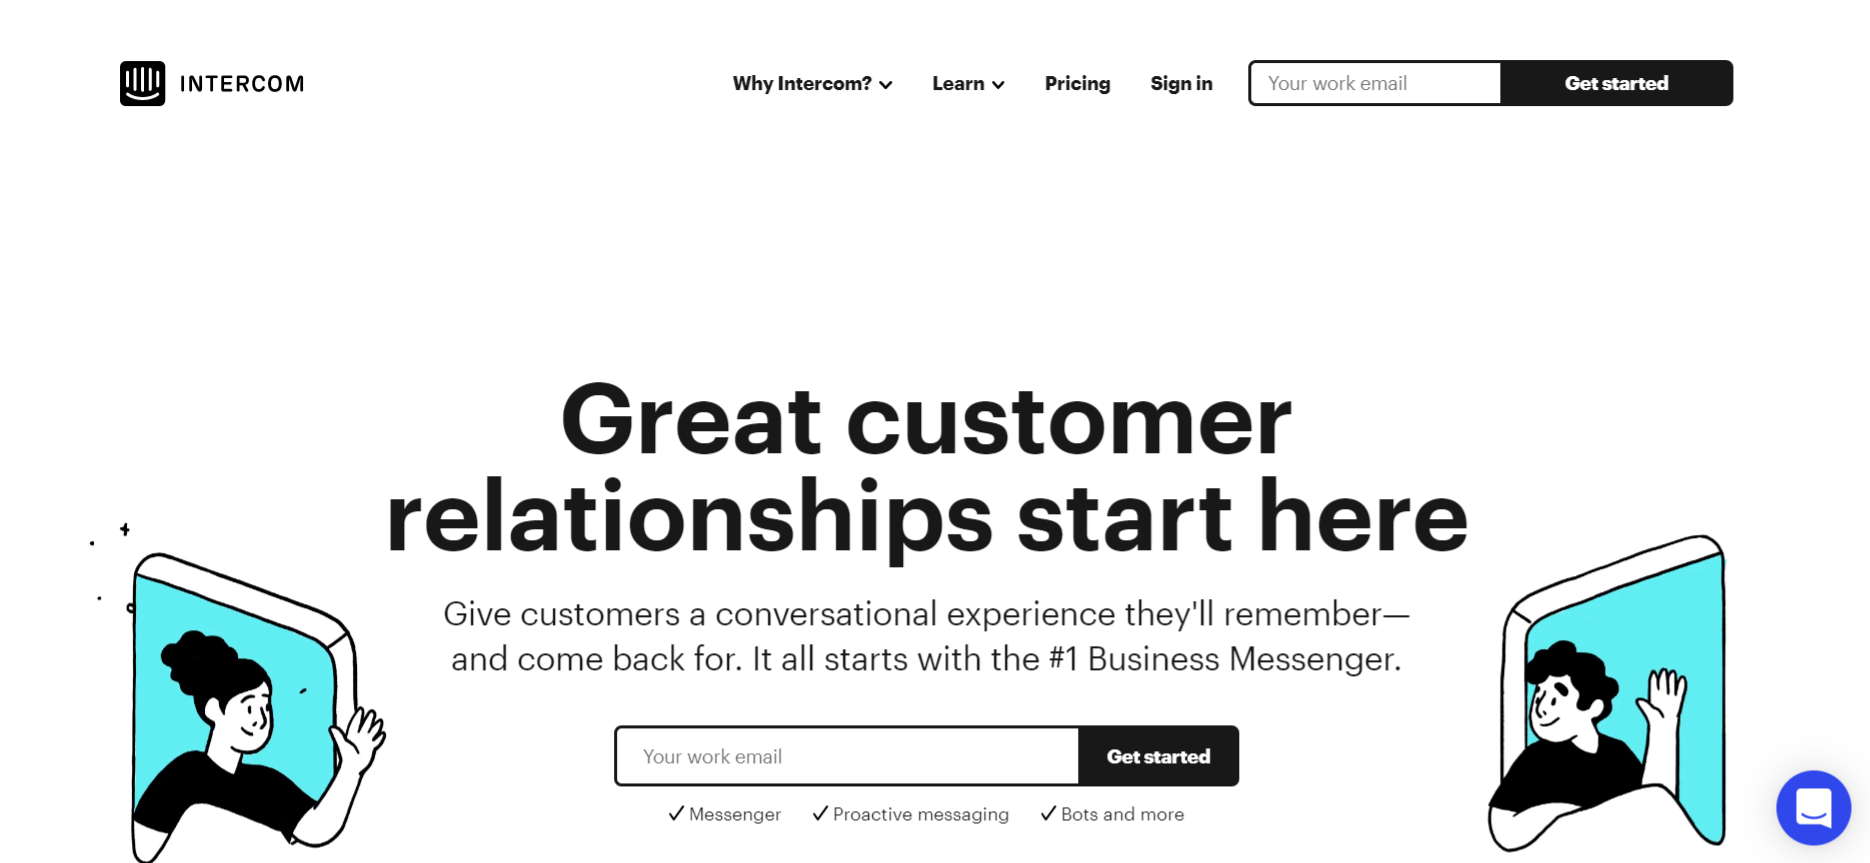 Intercom: Business marketing tool